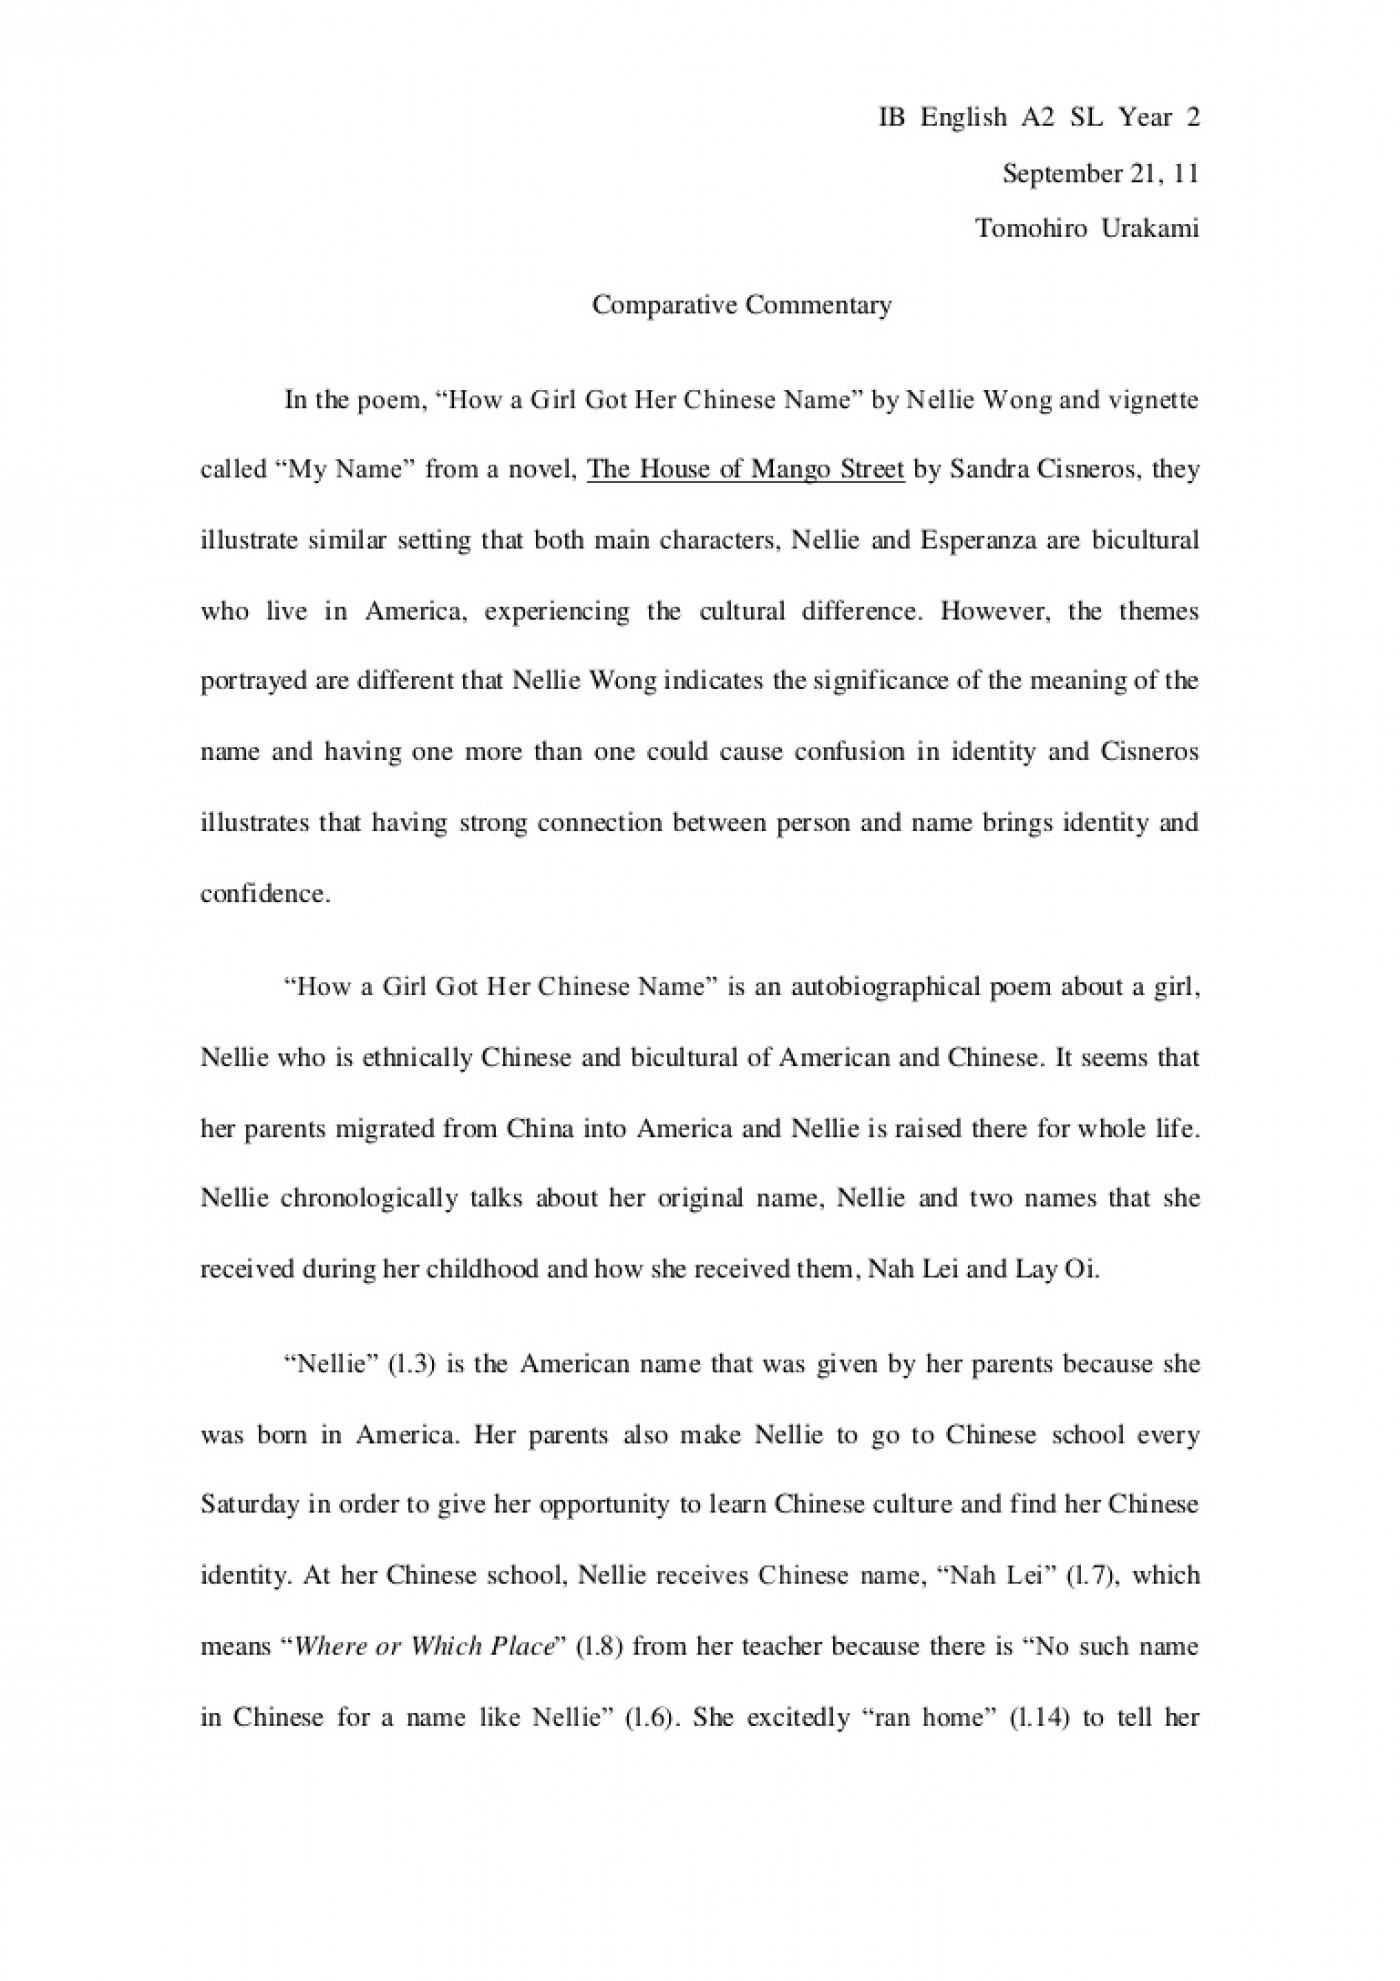 008 Compare And Contrast Essays Comparativeessaydraft Phpapp02 Thumbnail Magnificent Essay Examples 9th Grade For Elementary Students Topics 6th 1400